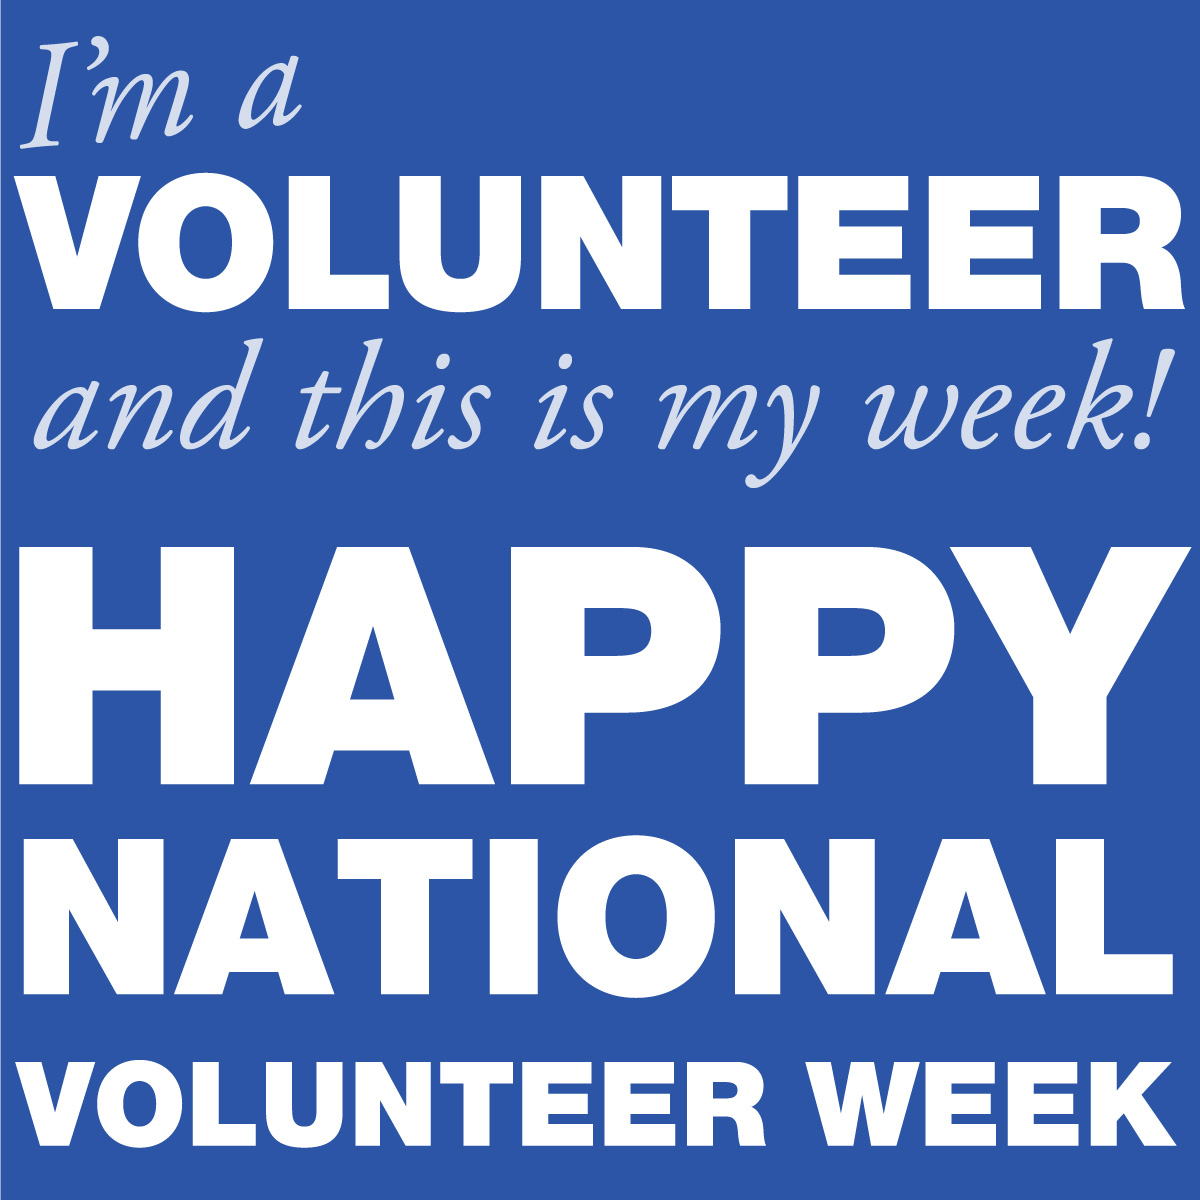 I'm a volunteer and this is my week! Happy National Volunteer Week!